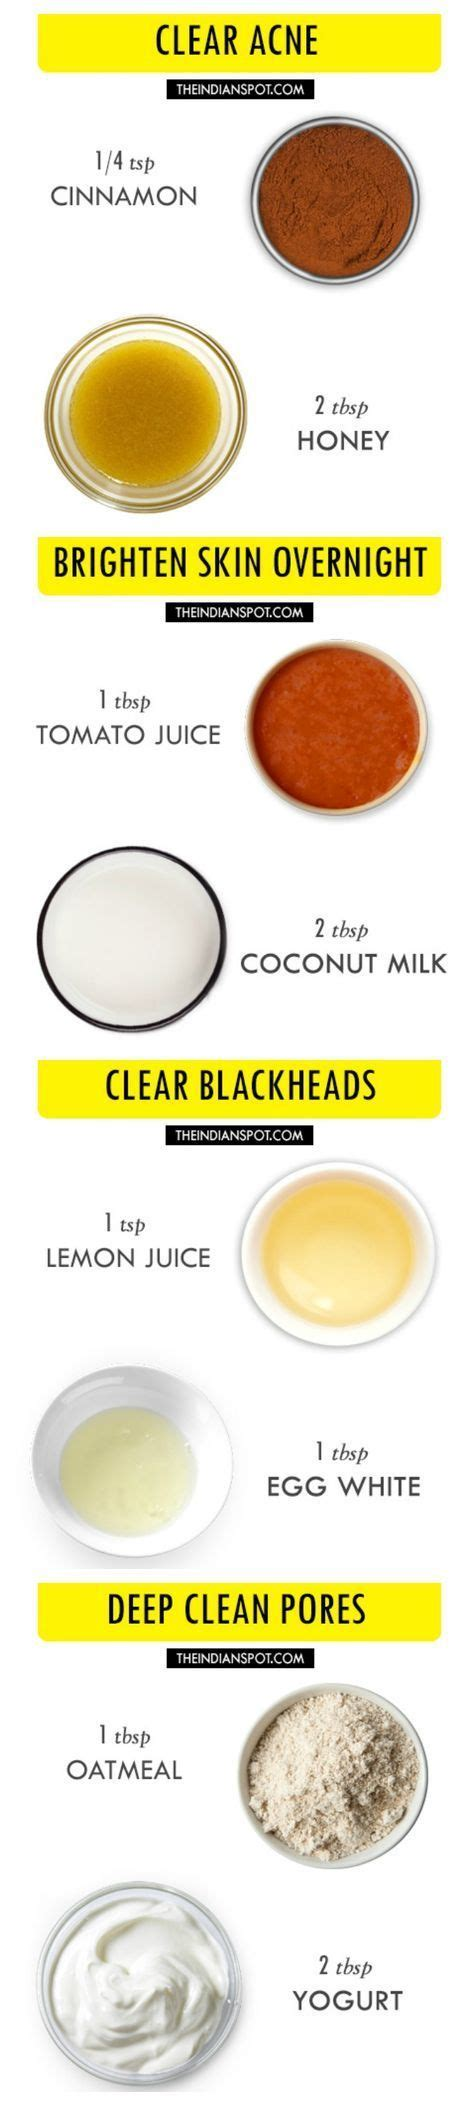 diy organic mask best 25 tips ideas on tips coconut skin and coconut